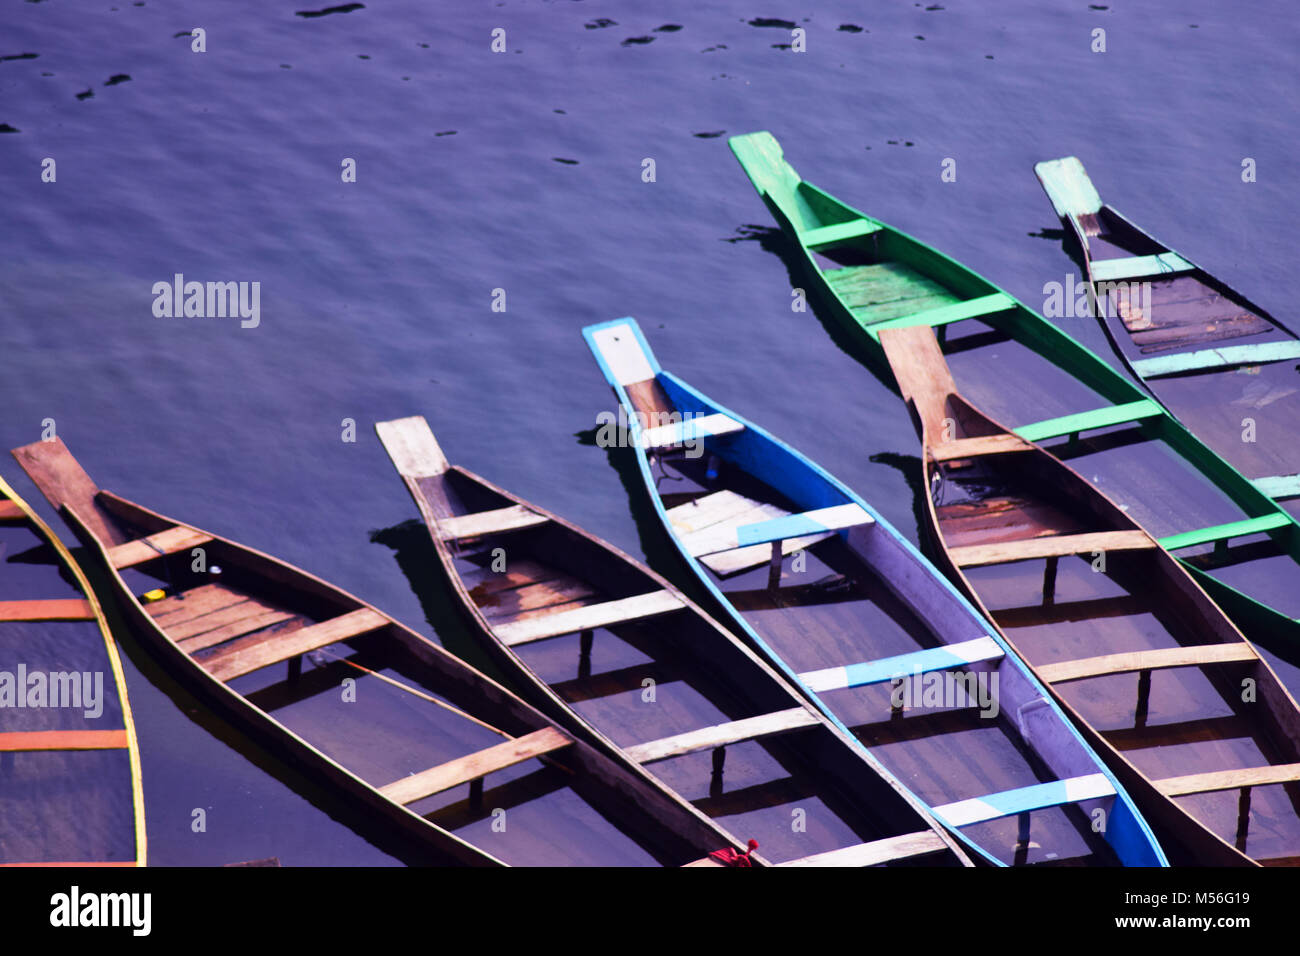 line of colorful boats - Stock Image